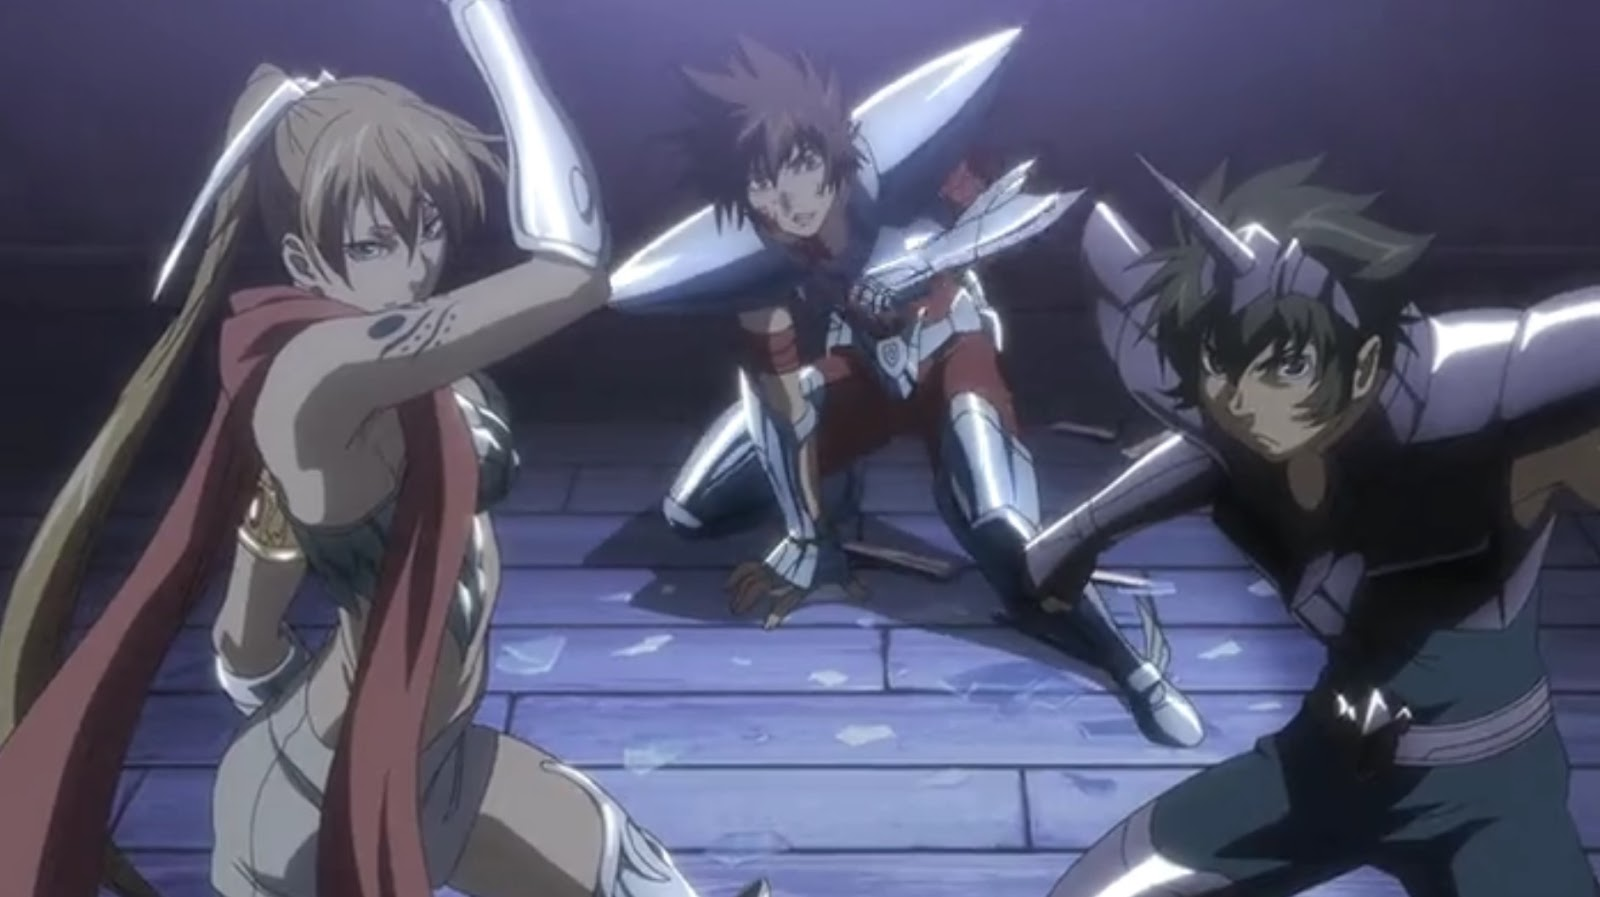 Saint Seiya: The Lost Canvas Episodio 15 Dublado